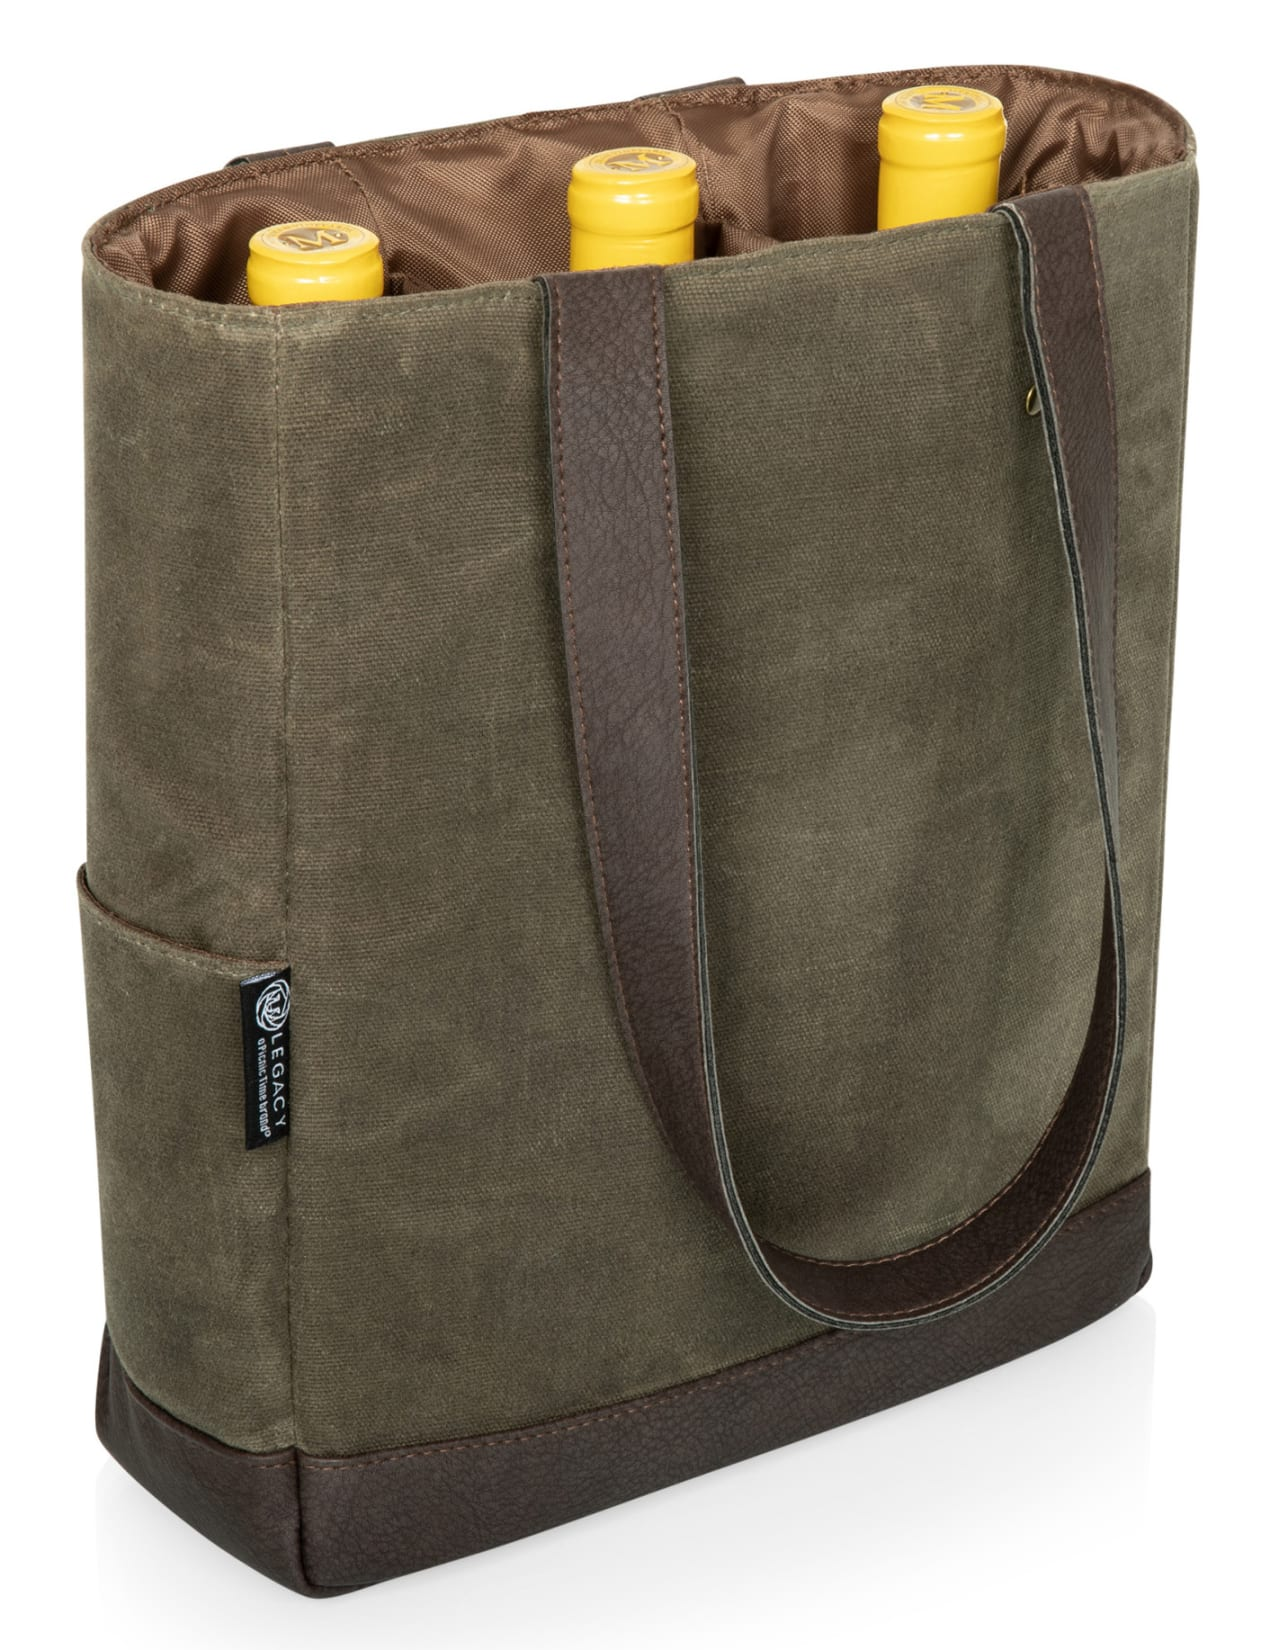 Legacy 3 Bottle Insulated Wine Cooler Bag